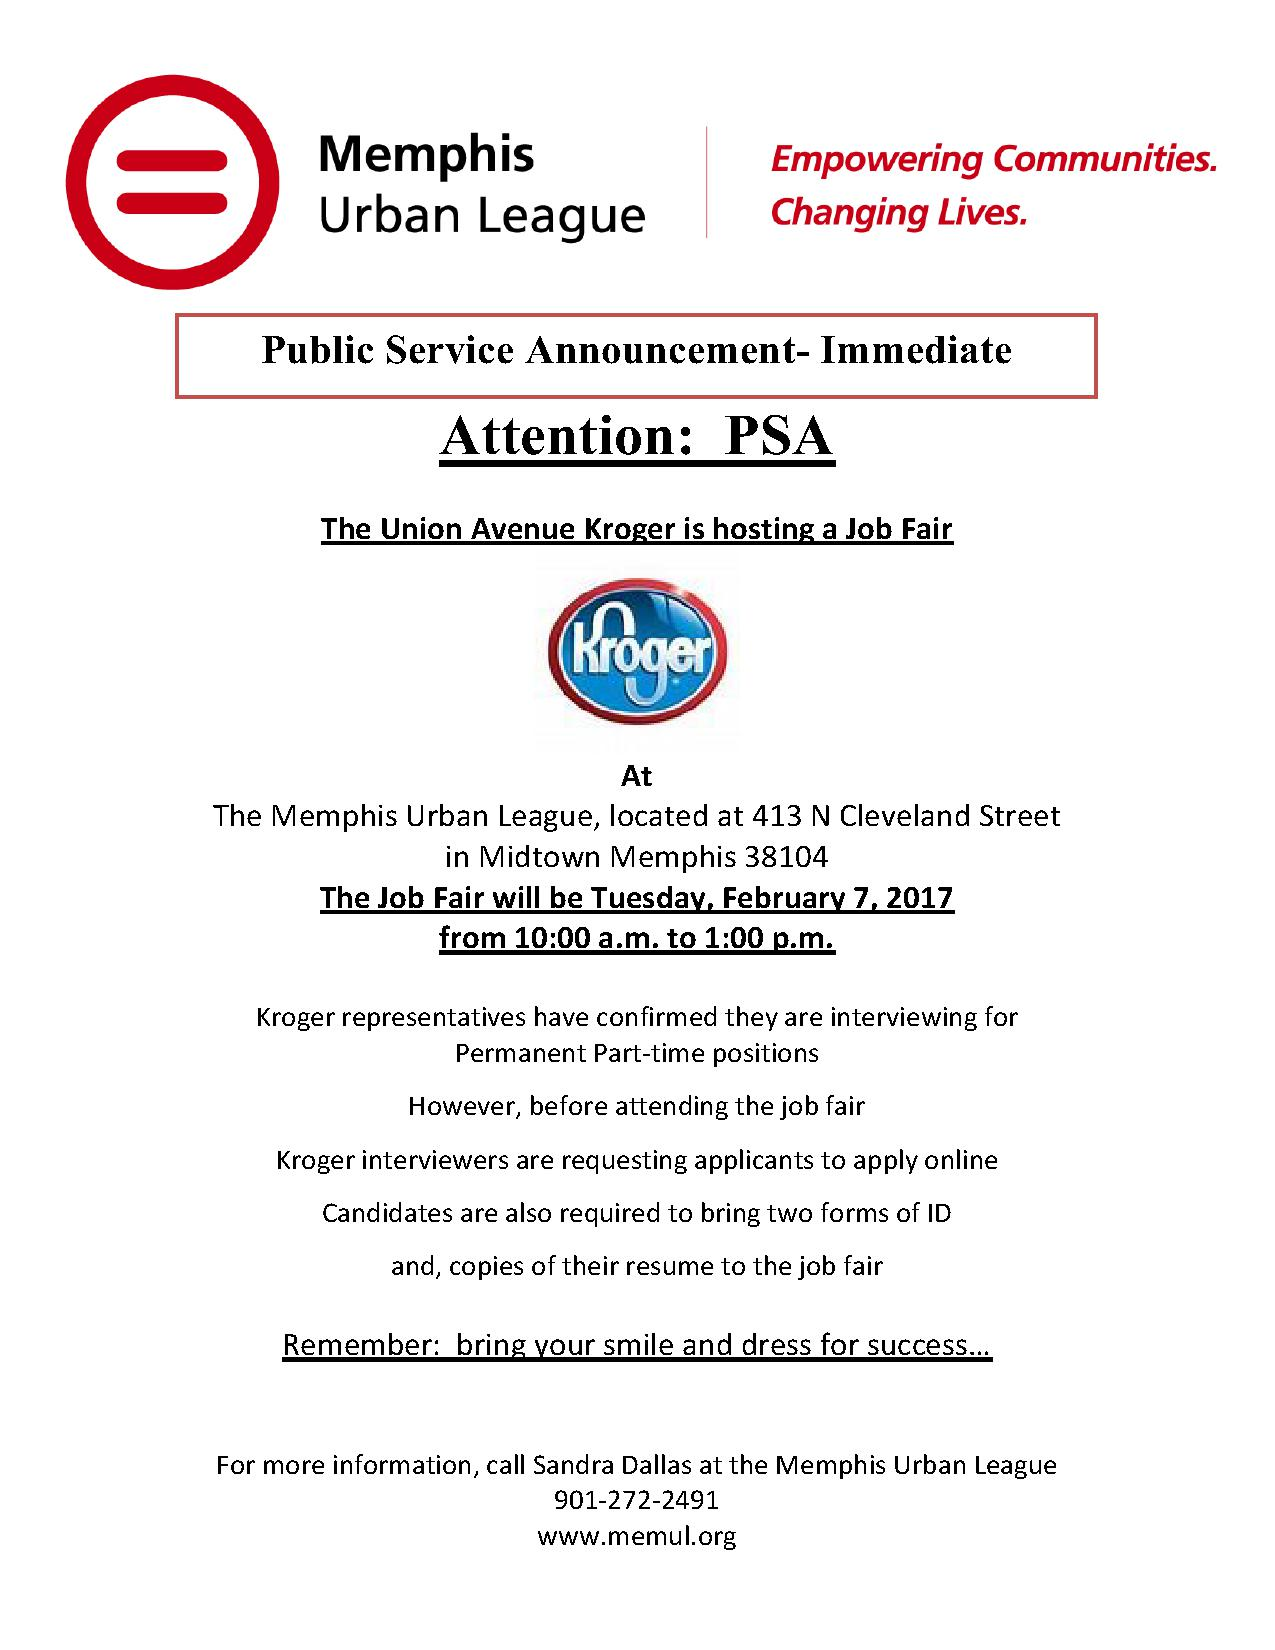 Kroger – Union Job Fair 2/7 @ Urban League | Job & Career News from ...